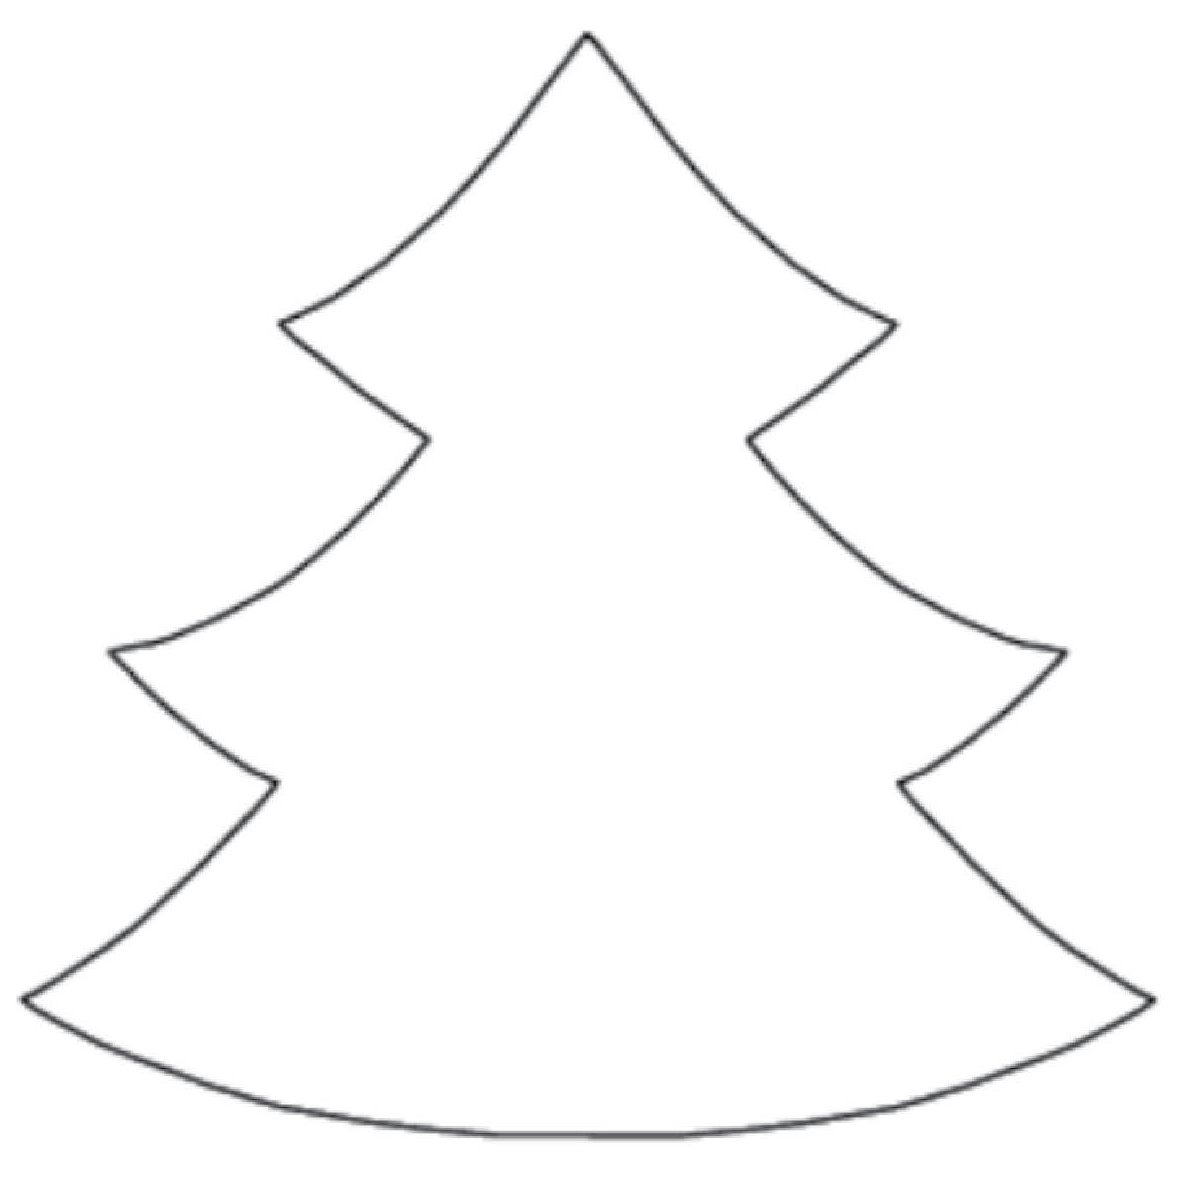 65 images of Christmas Tree Outline Clip Art . You can use these free ...